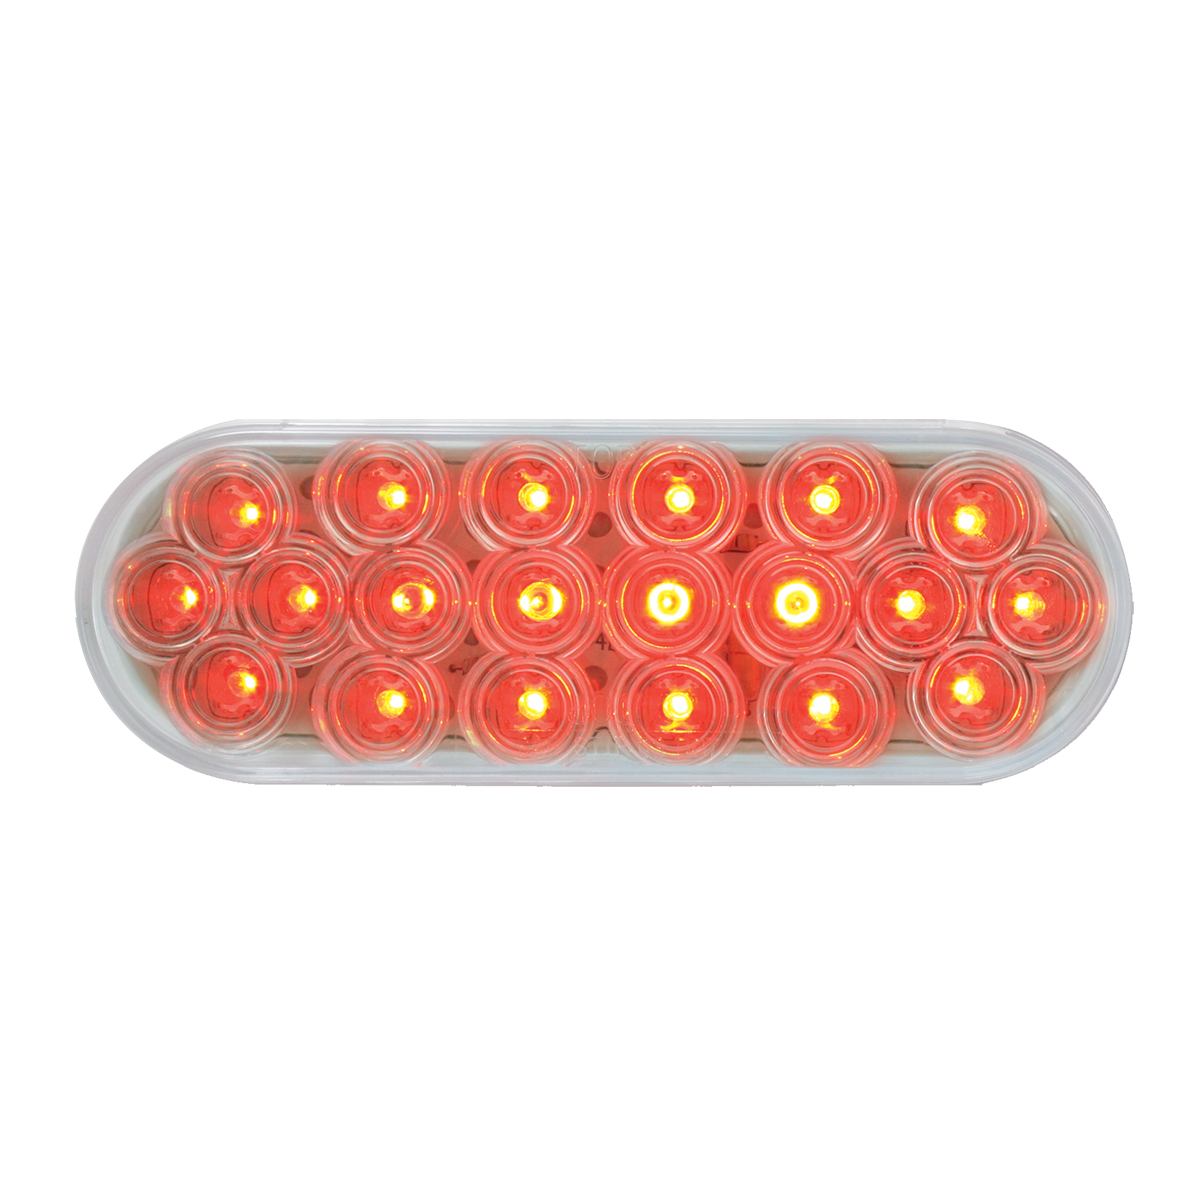 #87729 - Oval Fleet LED Flat Red/Clear Light - Slanted